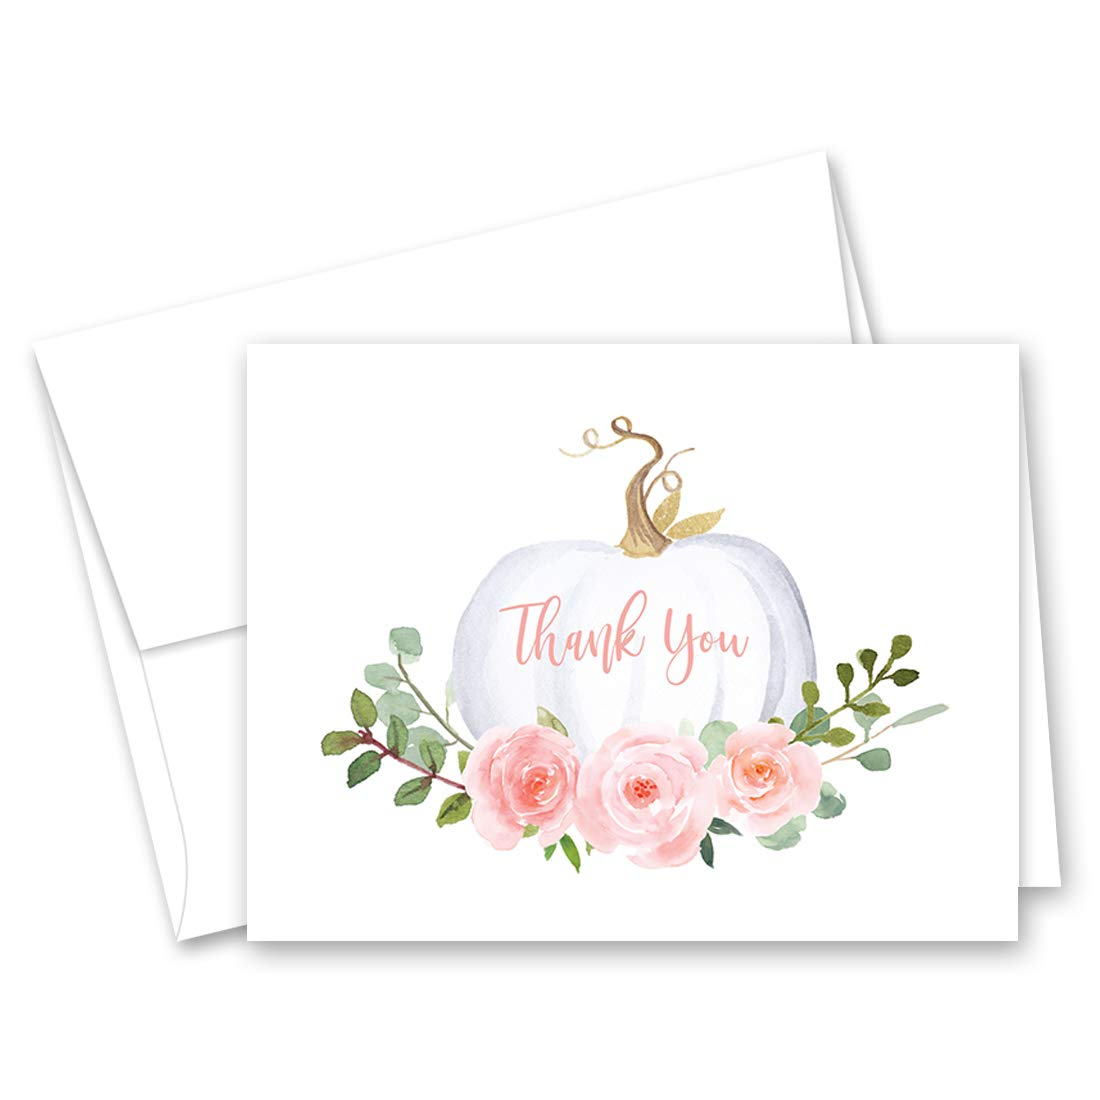 Floral Pumpkin Thank You Cards and Envelopes - 50 cnt by InvitationHouse